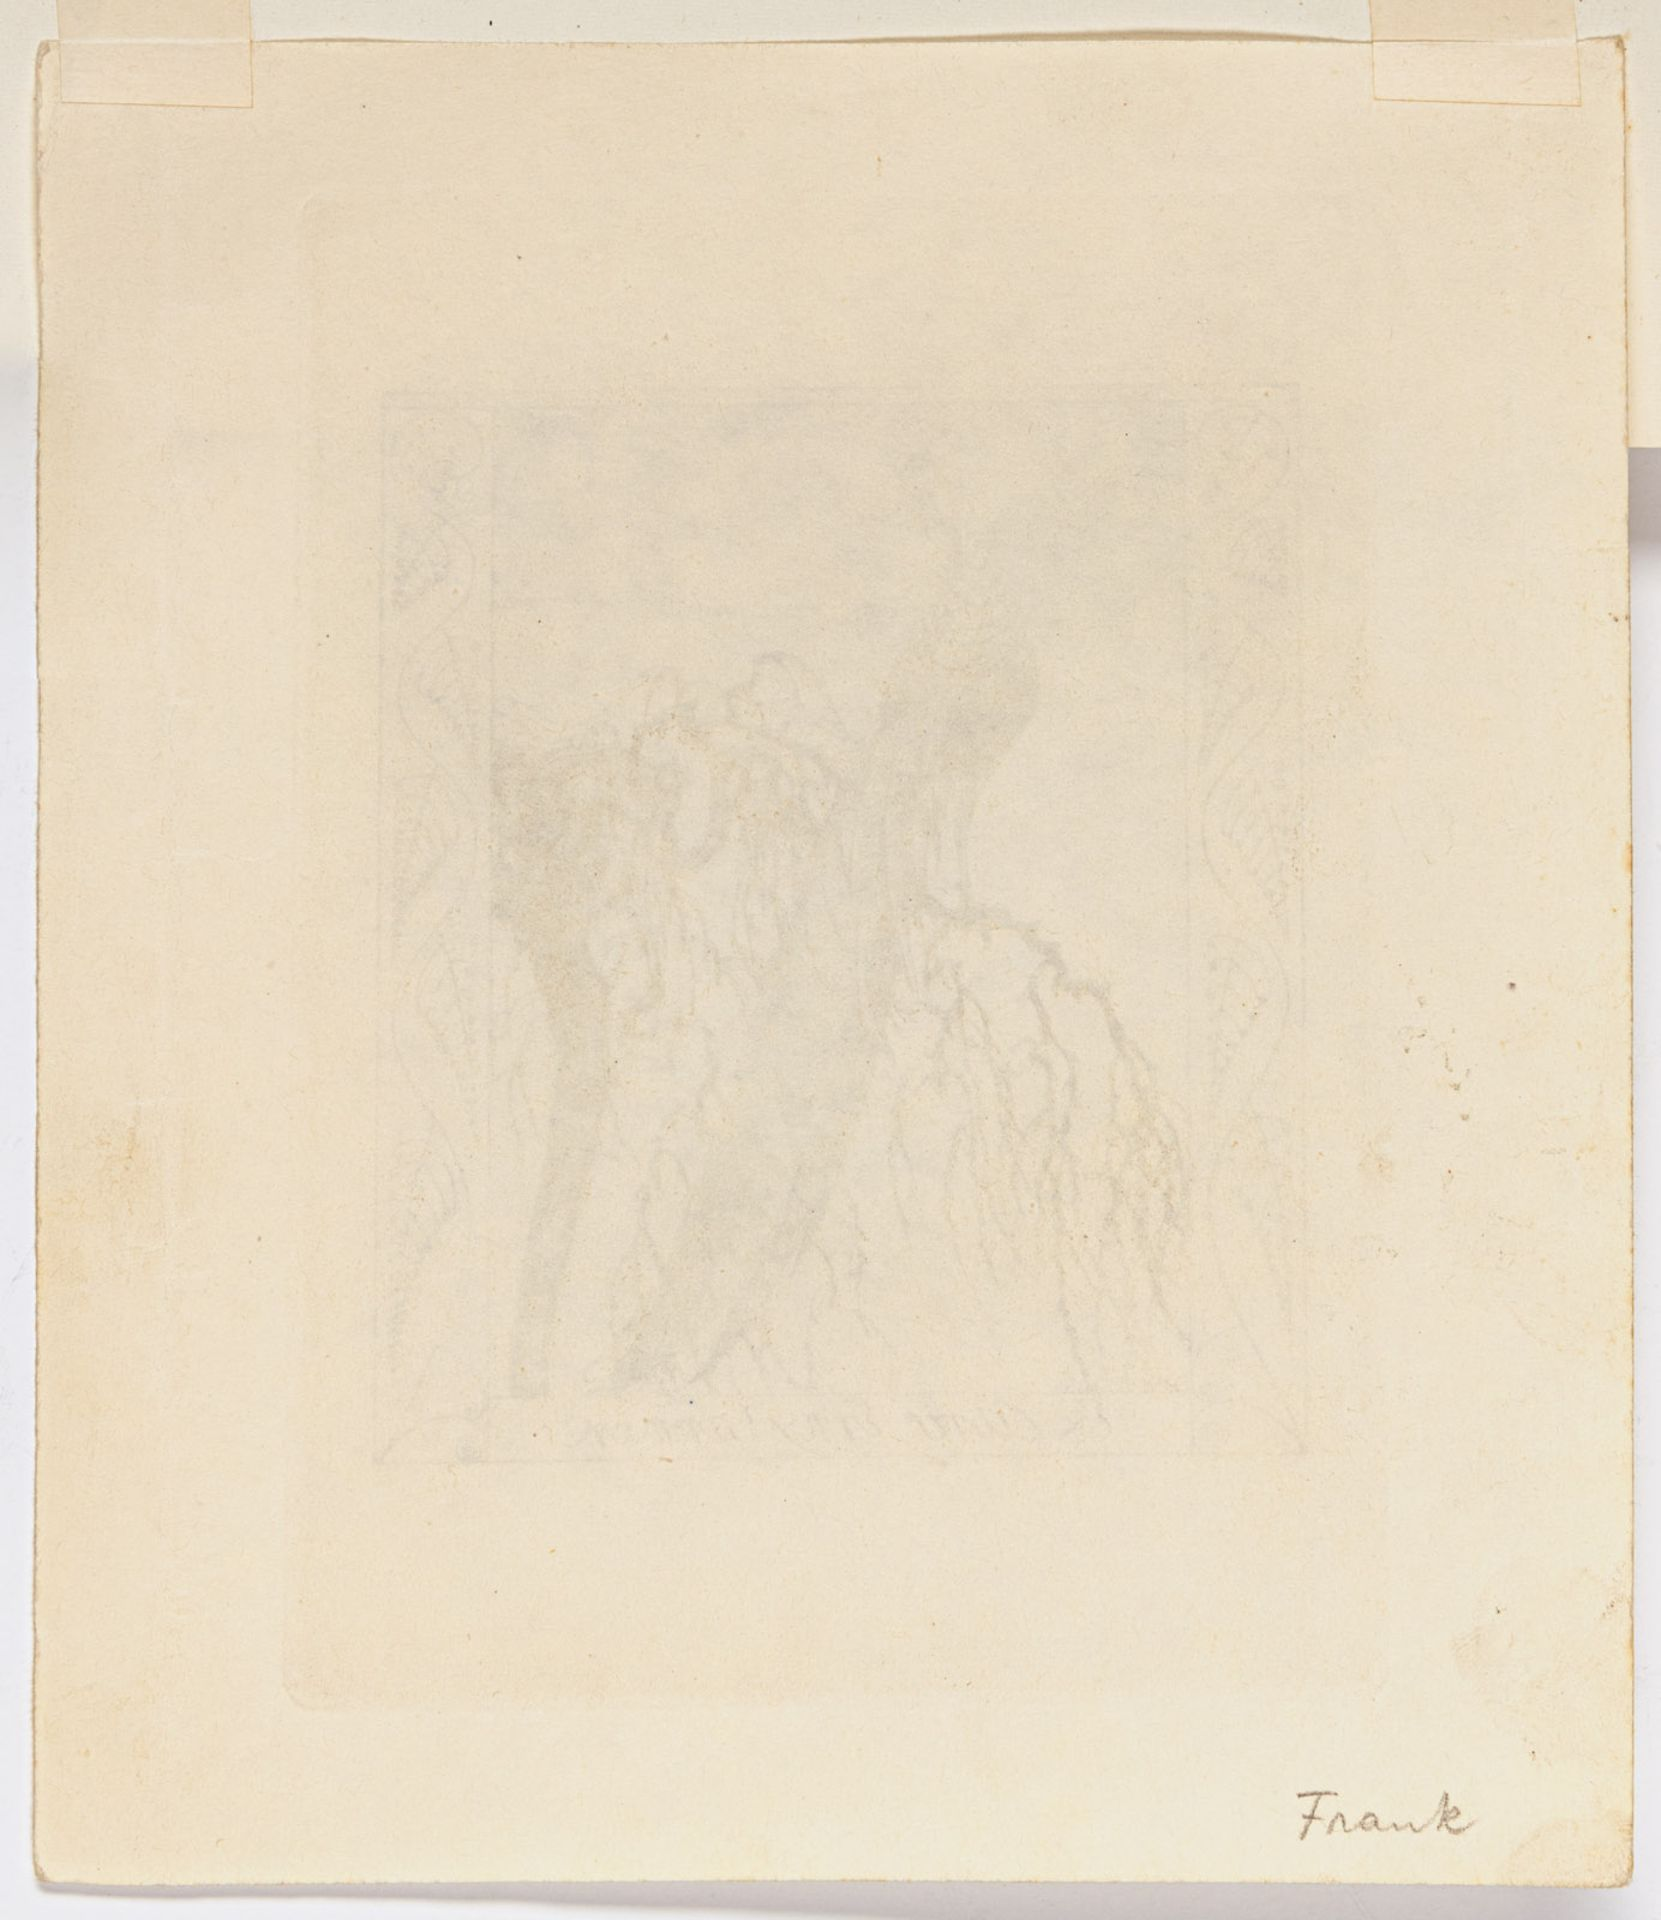 Various artists - Image 10 of 24